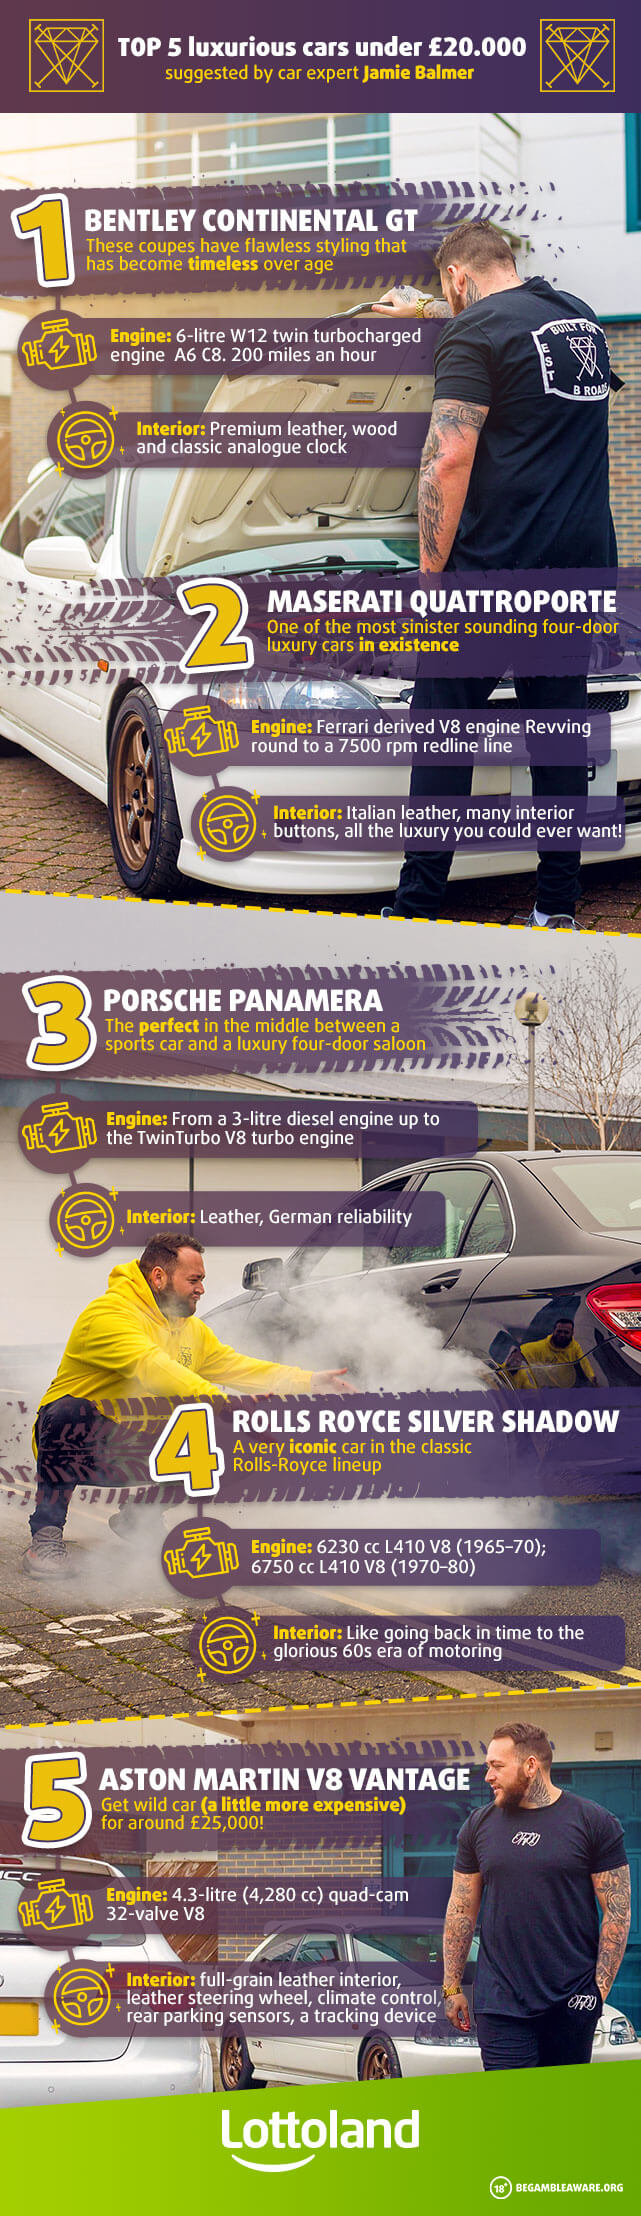 Infographic with the top 5 cars under £20,000 you could buy to look like you won the lottery